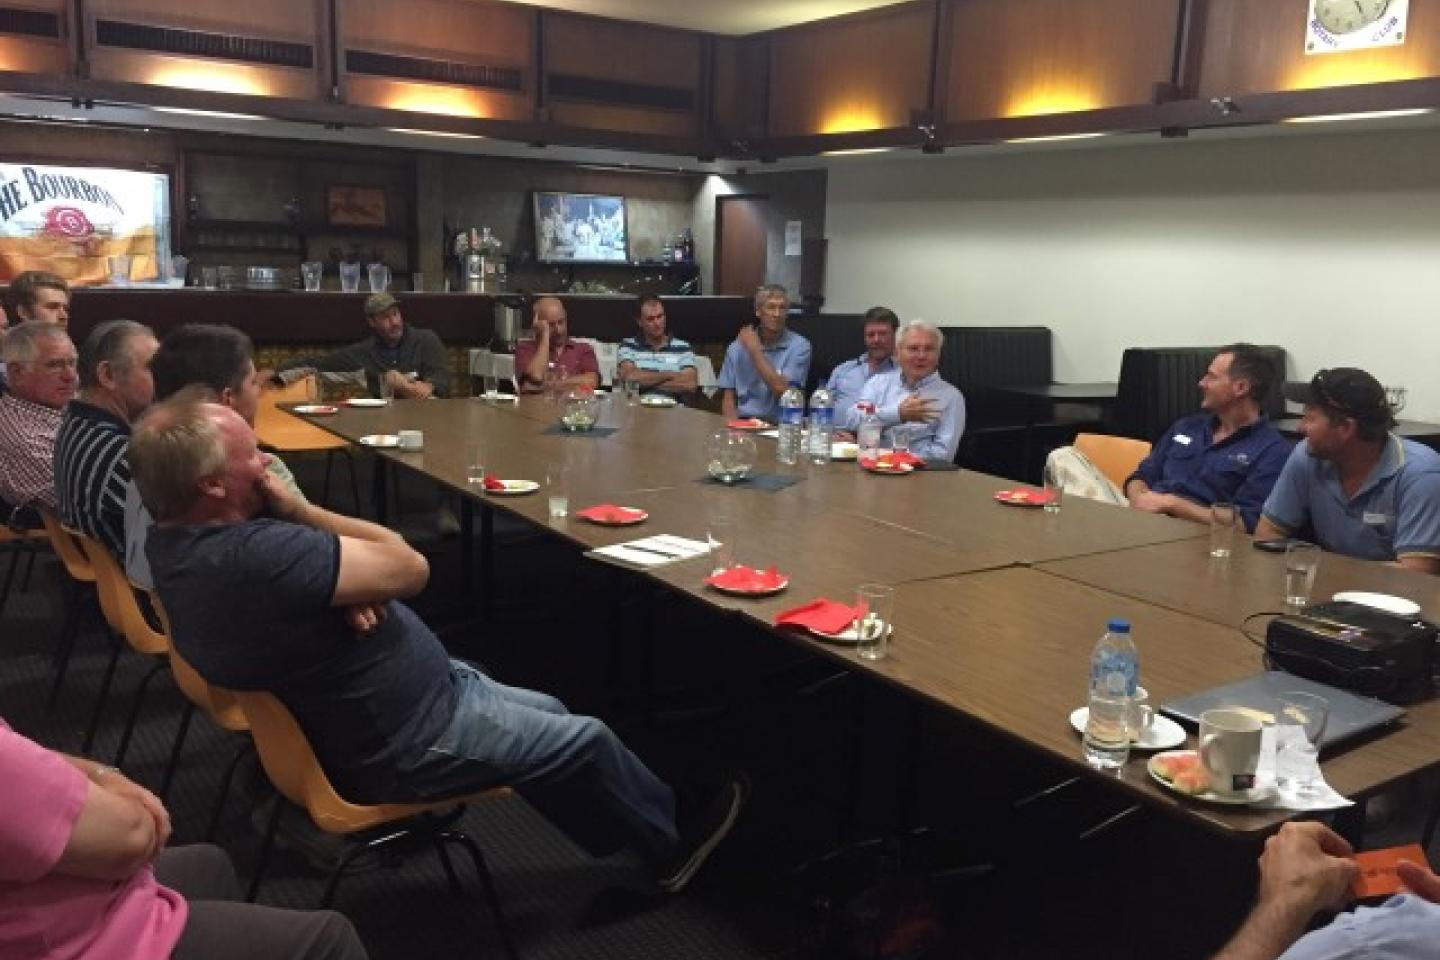 Ausplow managing director John Ryan fields questions from farmers during last night's meeting in Wongan Hills. Photo courtesy Boekeman Machinery.